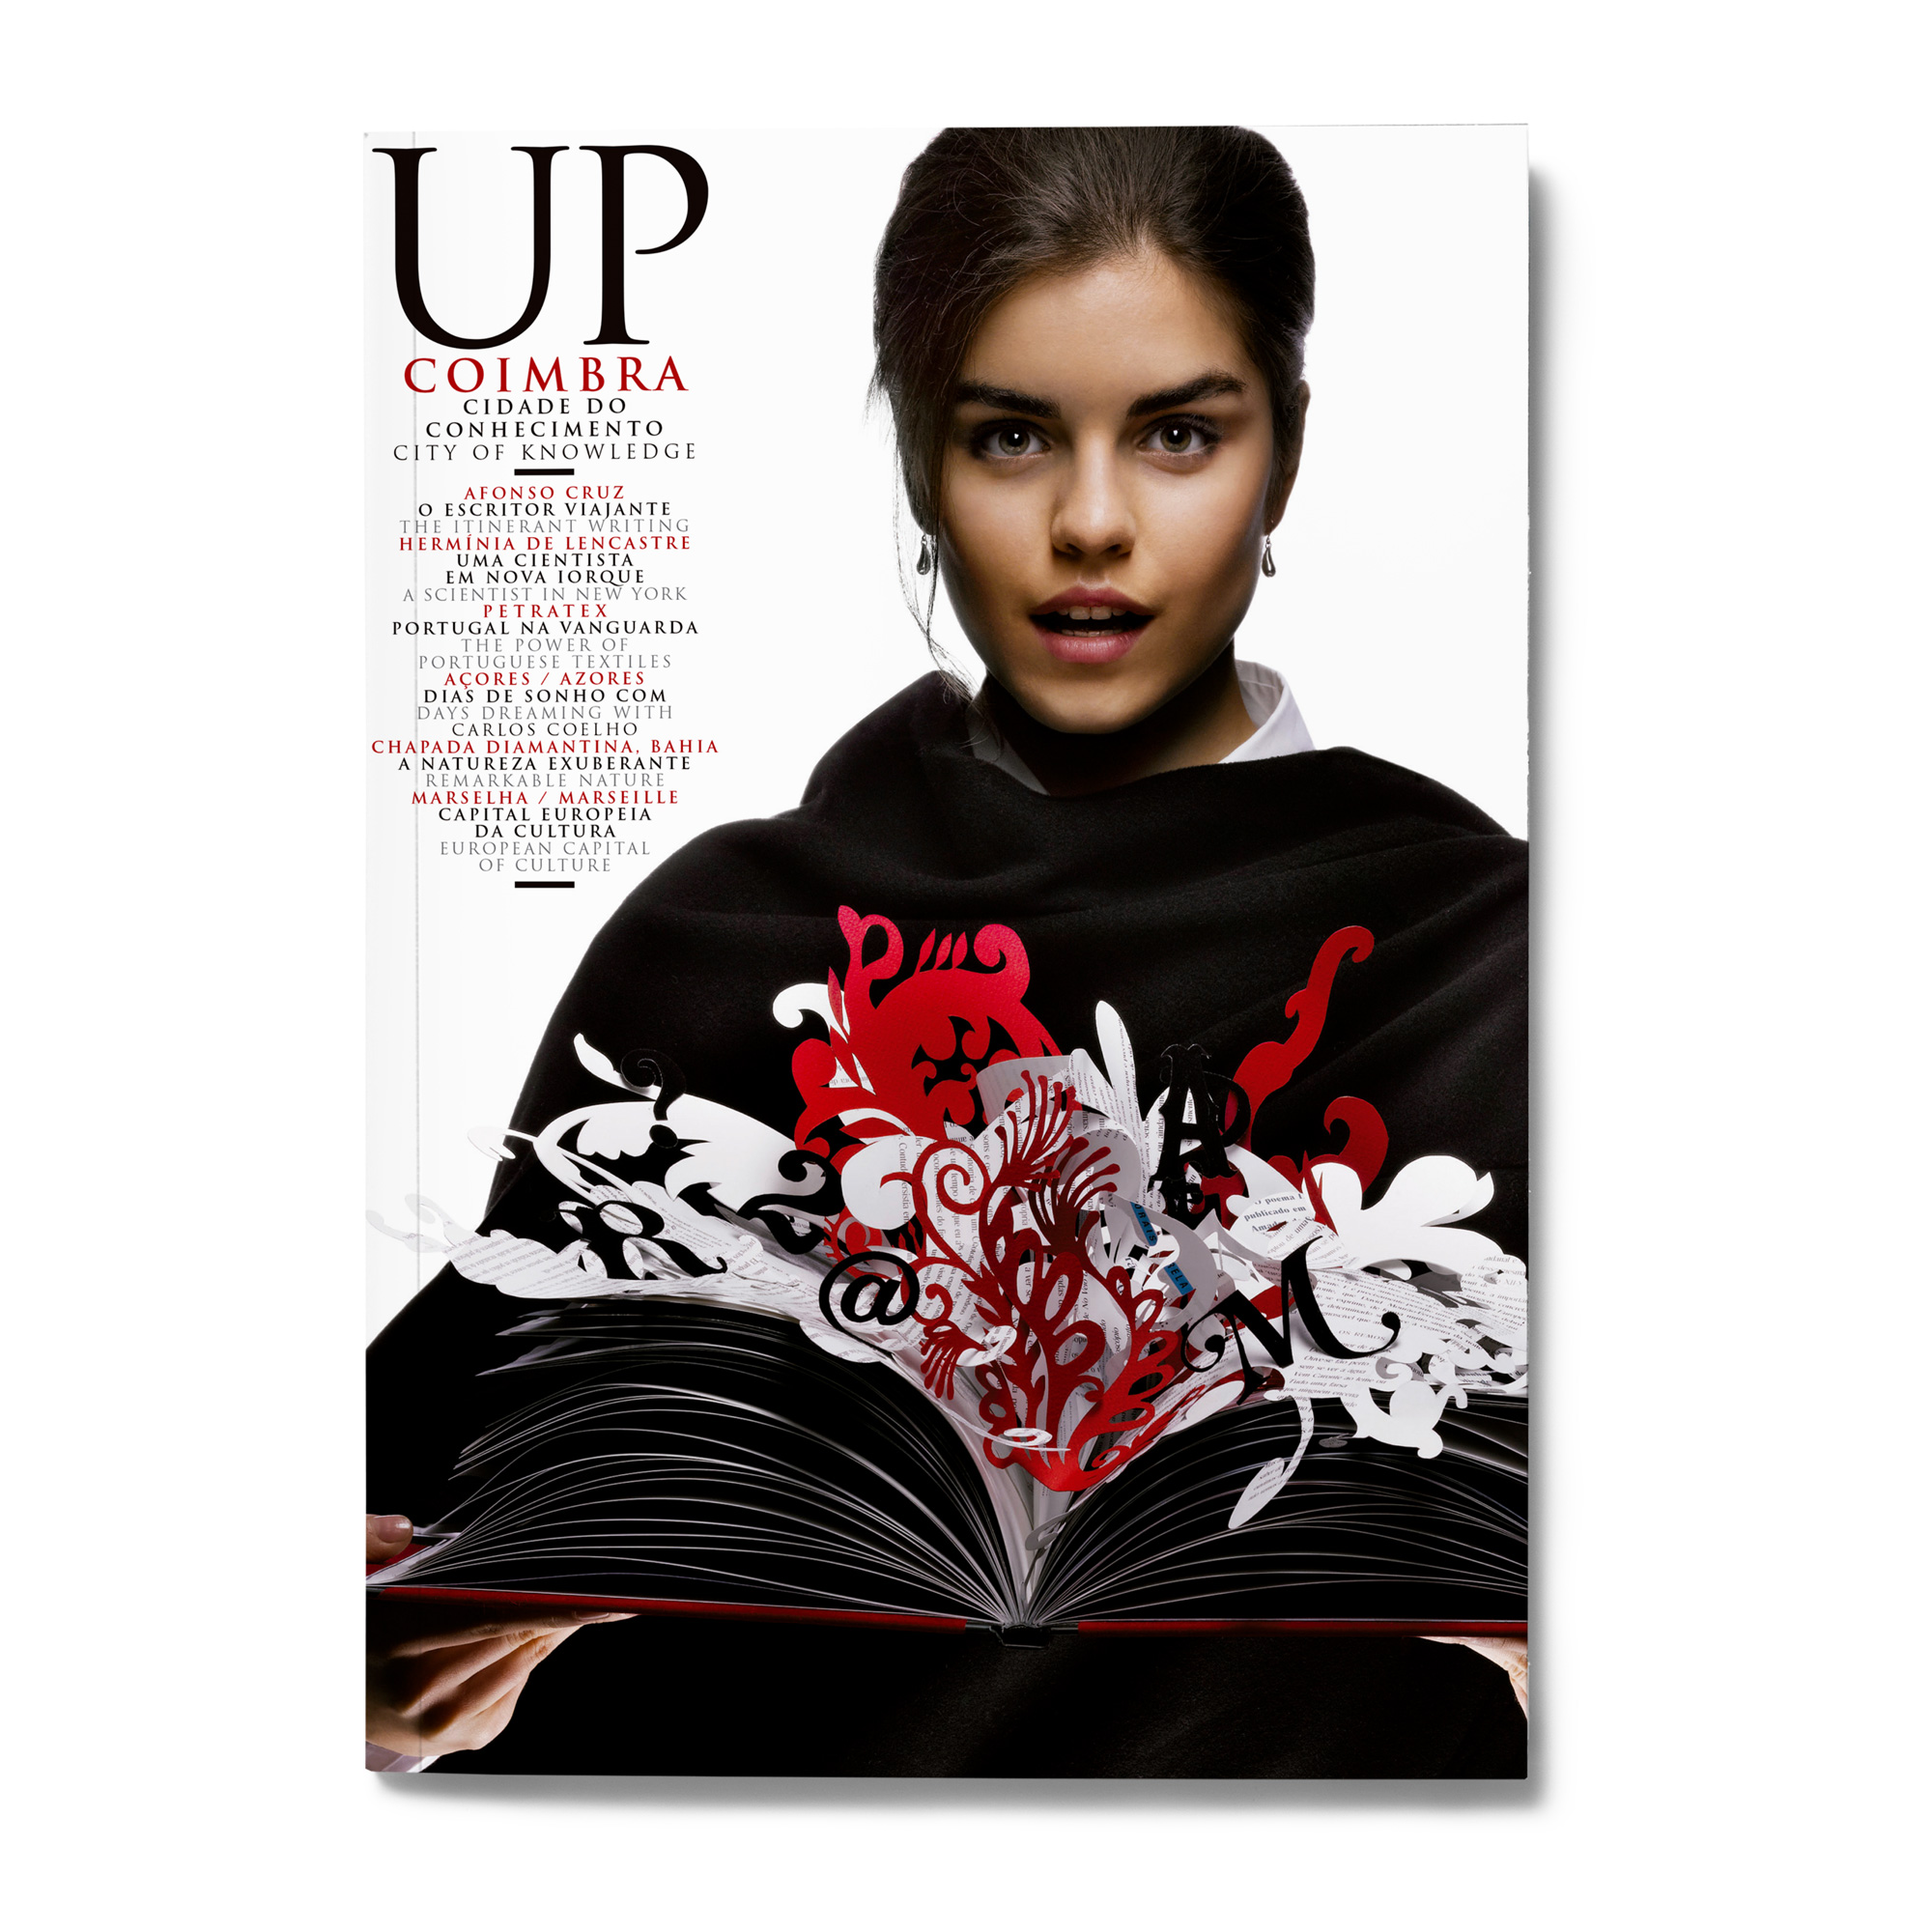 UP Lifestyle Page - DESIGN BY MIGUEL SOEIRO